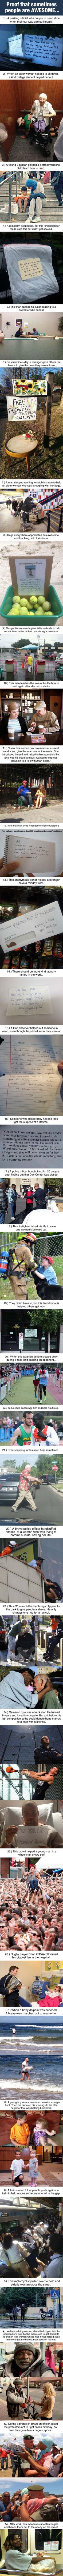 Why can't there be a 24-hour news channel devoted to positive stories like these?